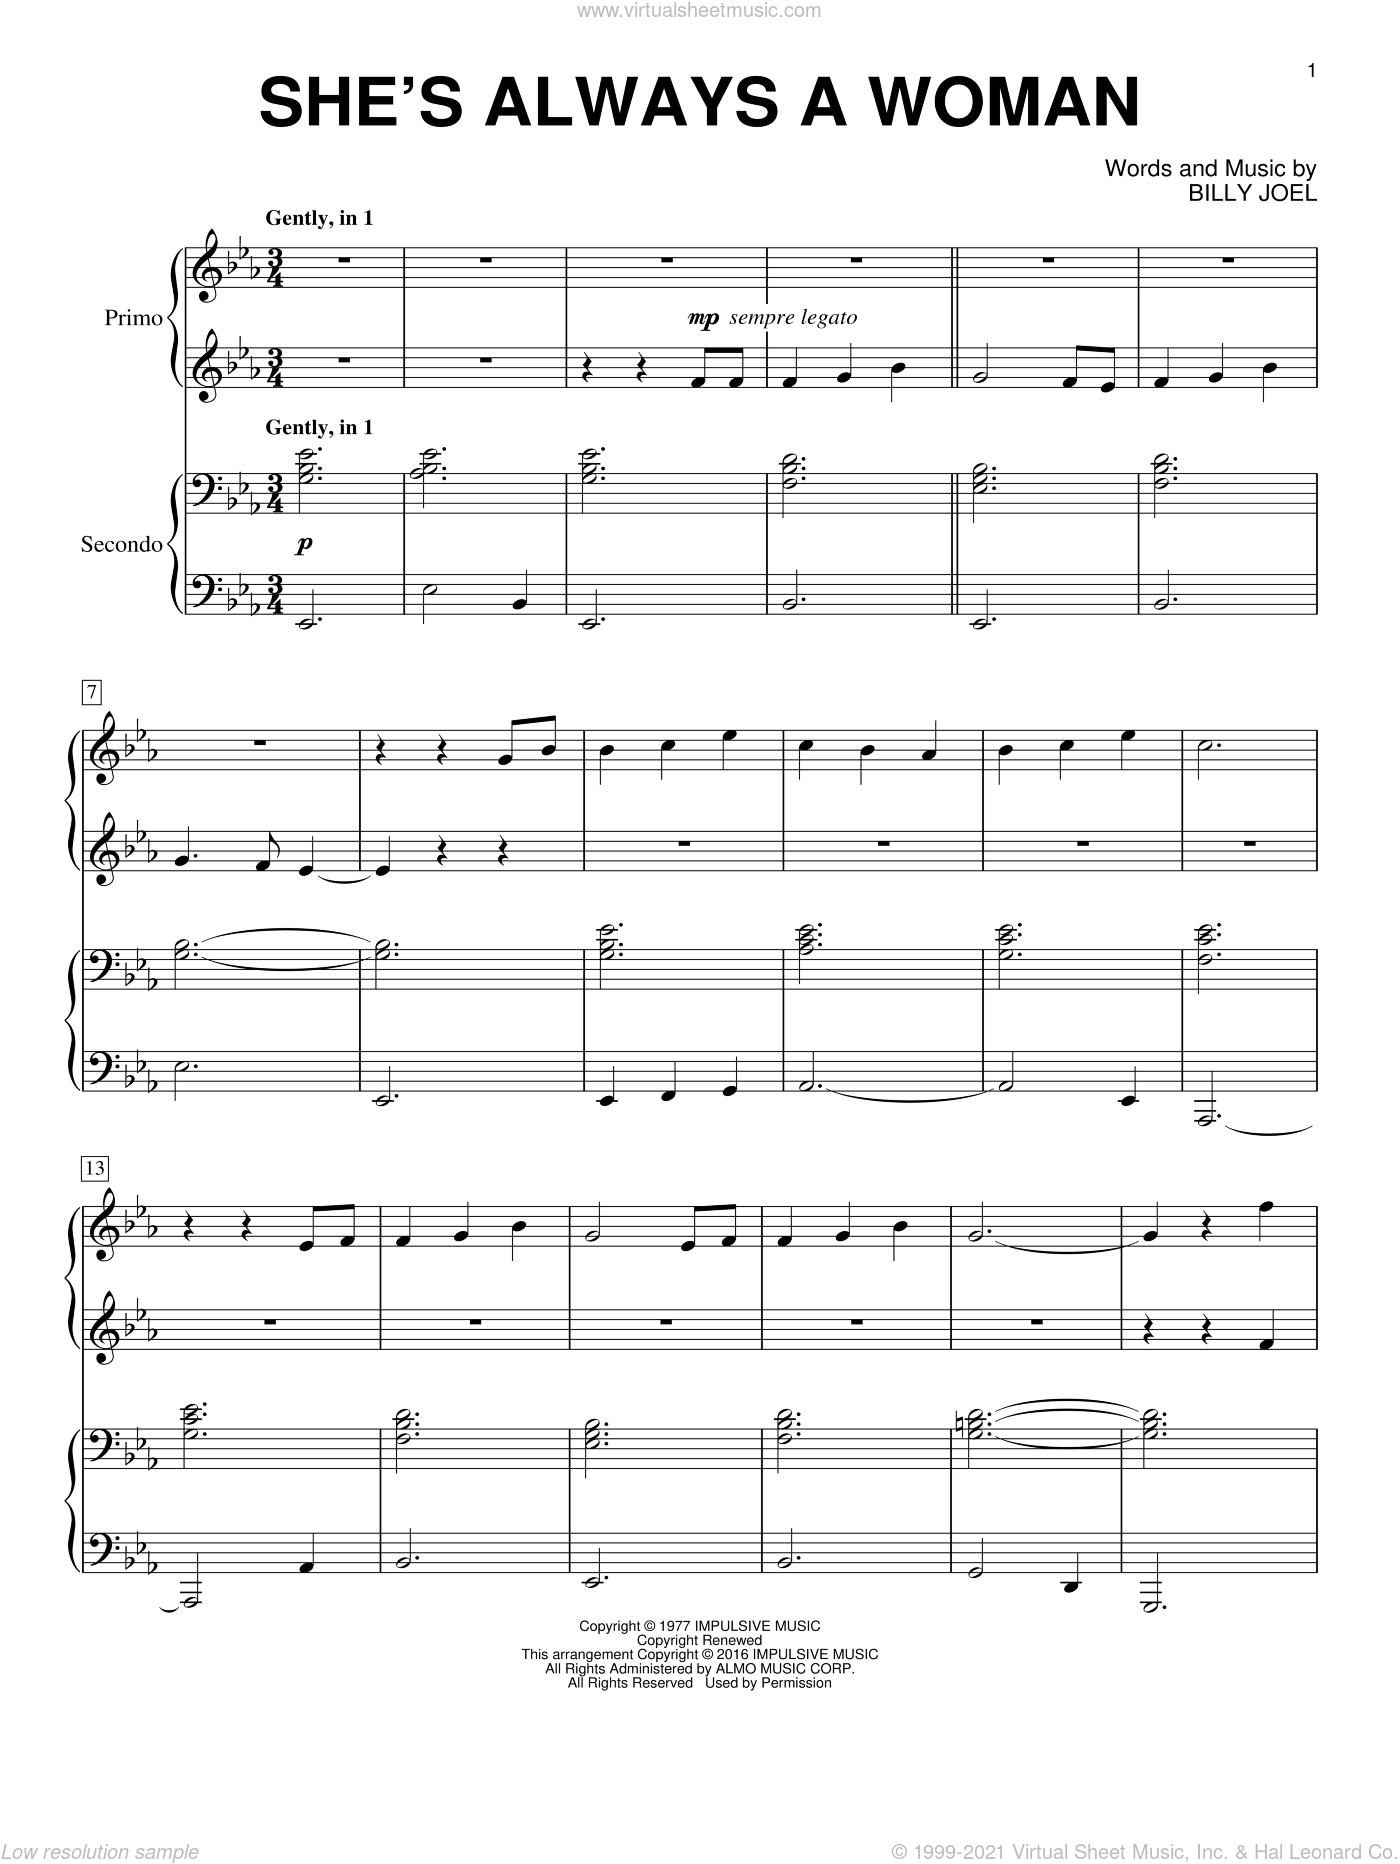 She's Always A Woman sheet music for piano four hands (duets) by Billy Joel